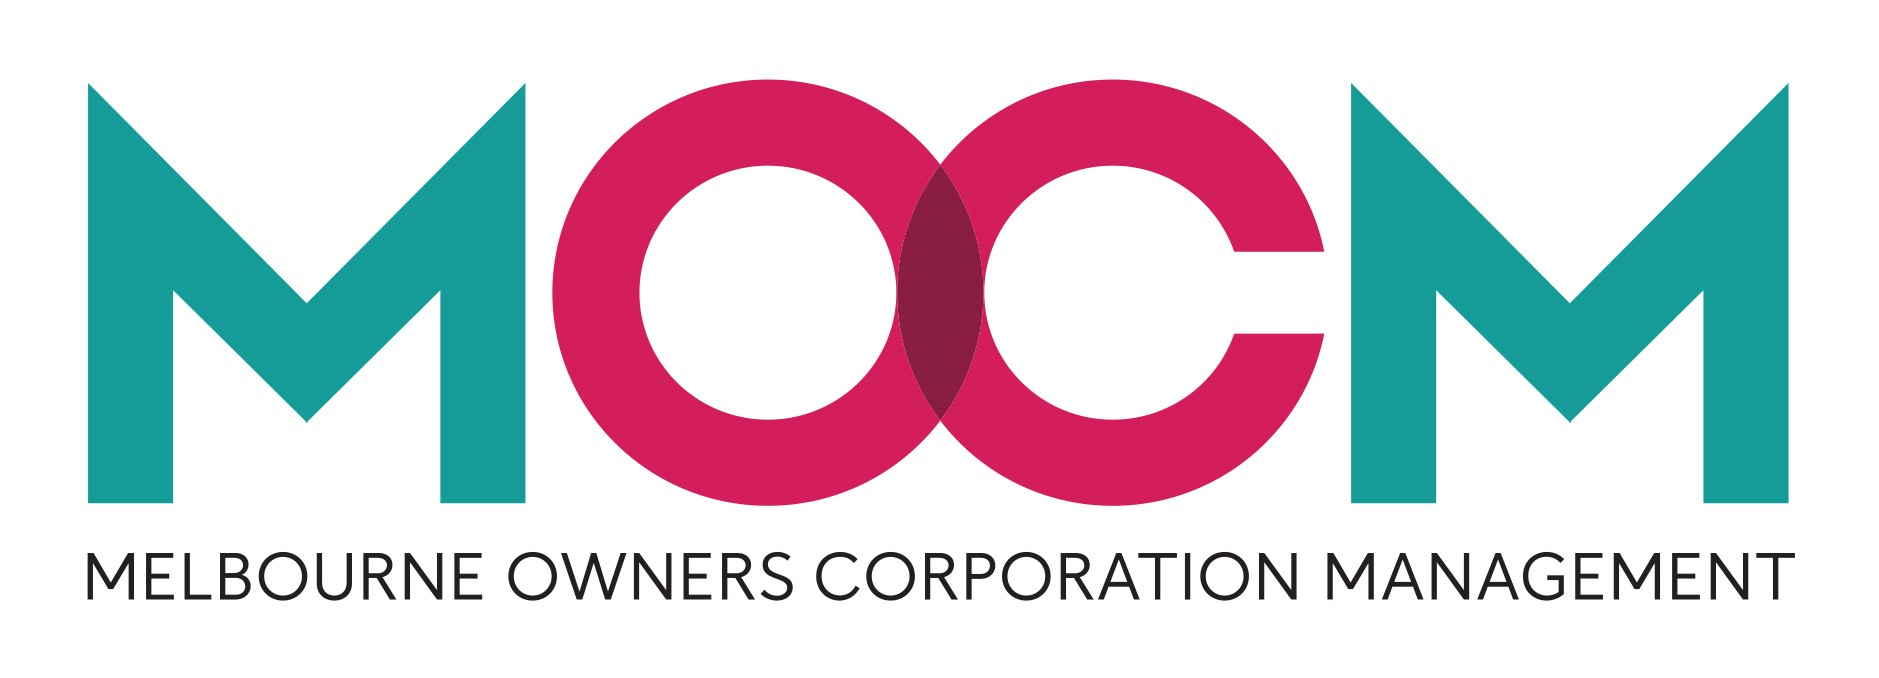 melbourne owners corporation management